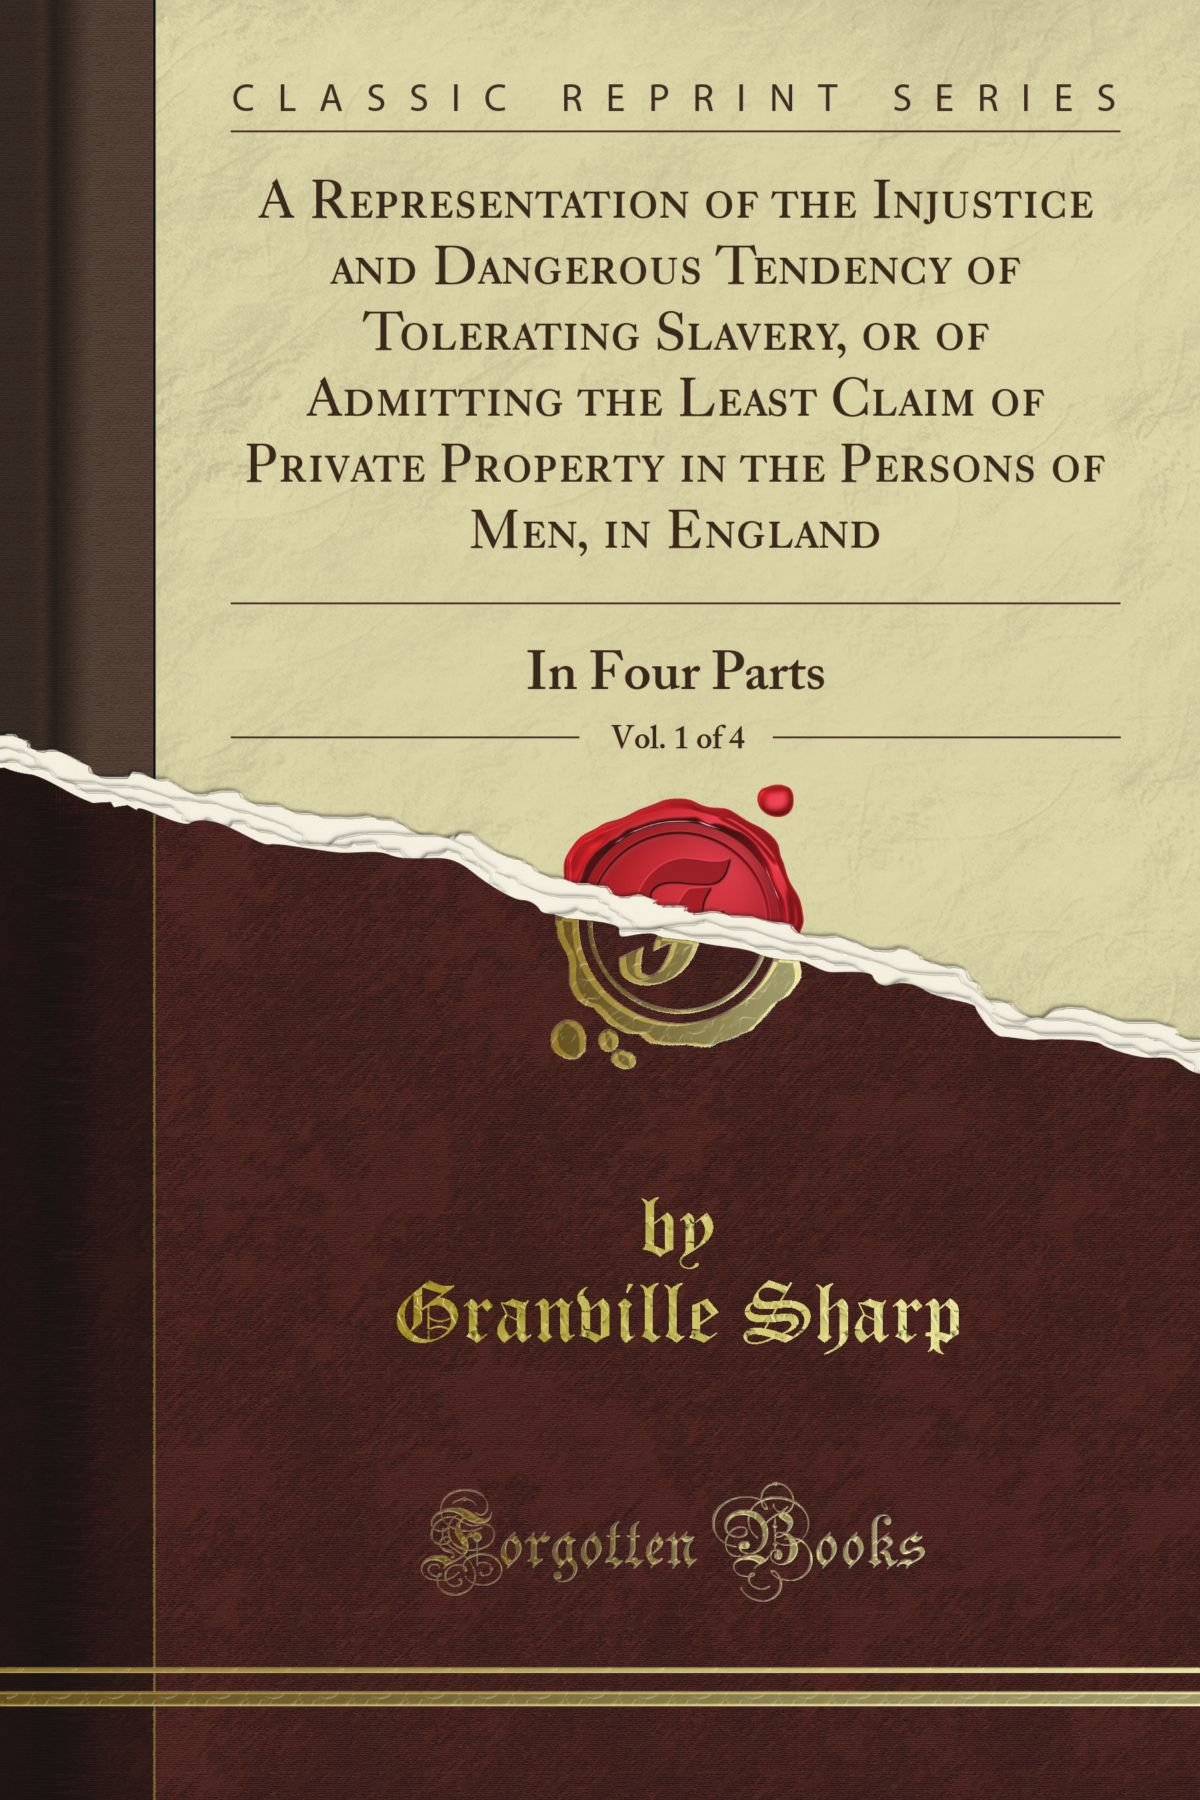 A Representation of the Injustice and Dangerous Tendency of Tolerating Slavery, or of Admitting the Least Claim of Private Property in the Persons of ... In Four Parts, Vol. 1 of 4 (Classic Reprint) pdf epub